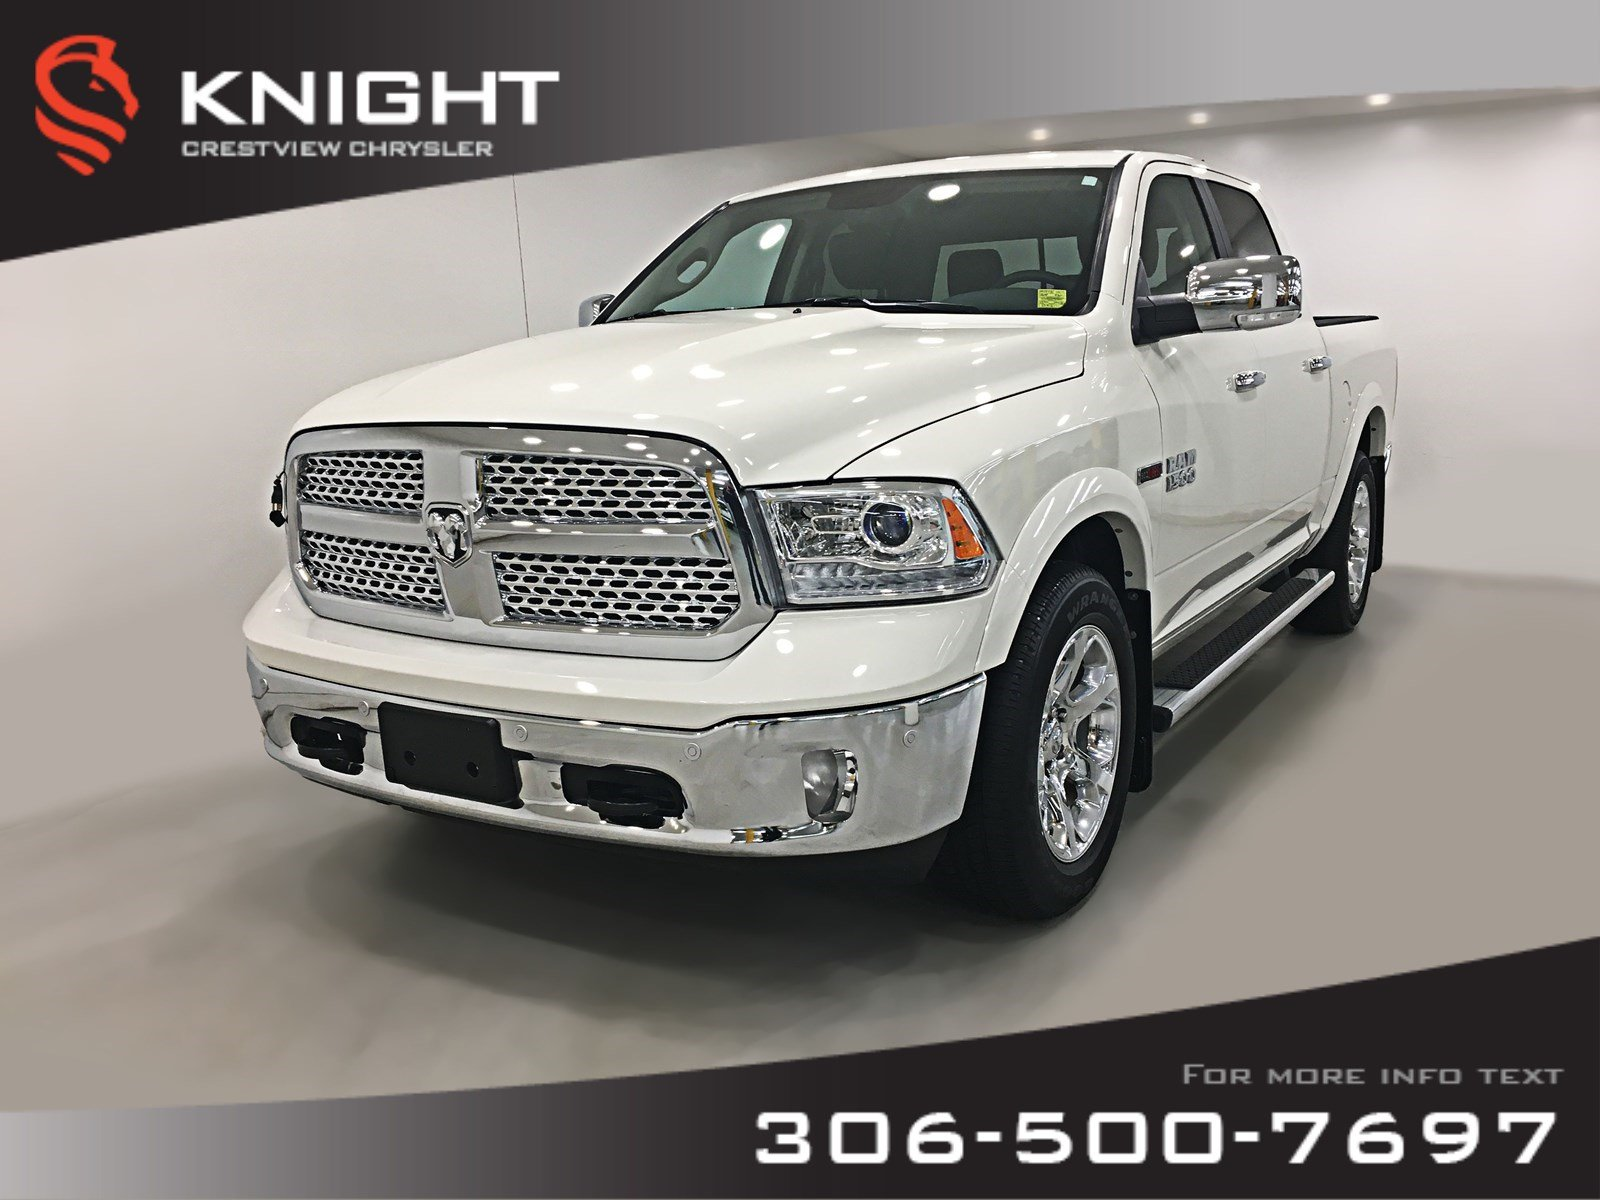 Pre-Owned 2018 Ram 1500 Laramie Crew Cab EcoDiesel | Remote Start